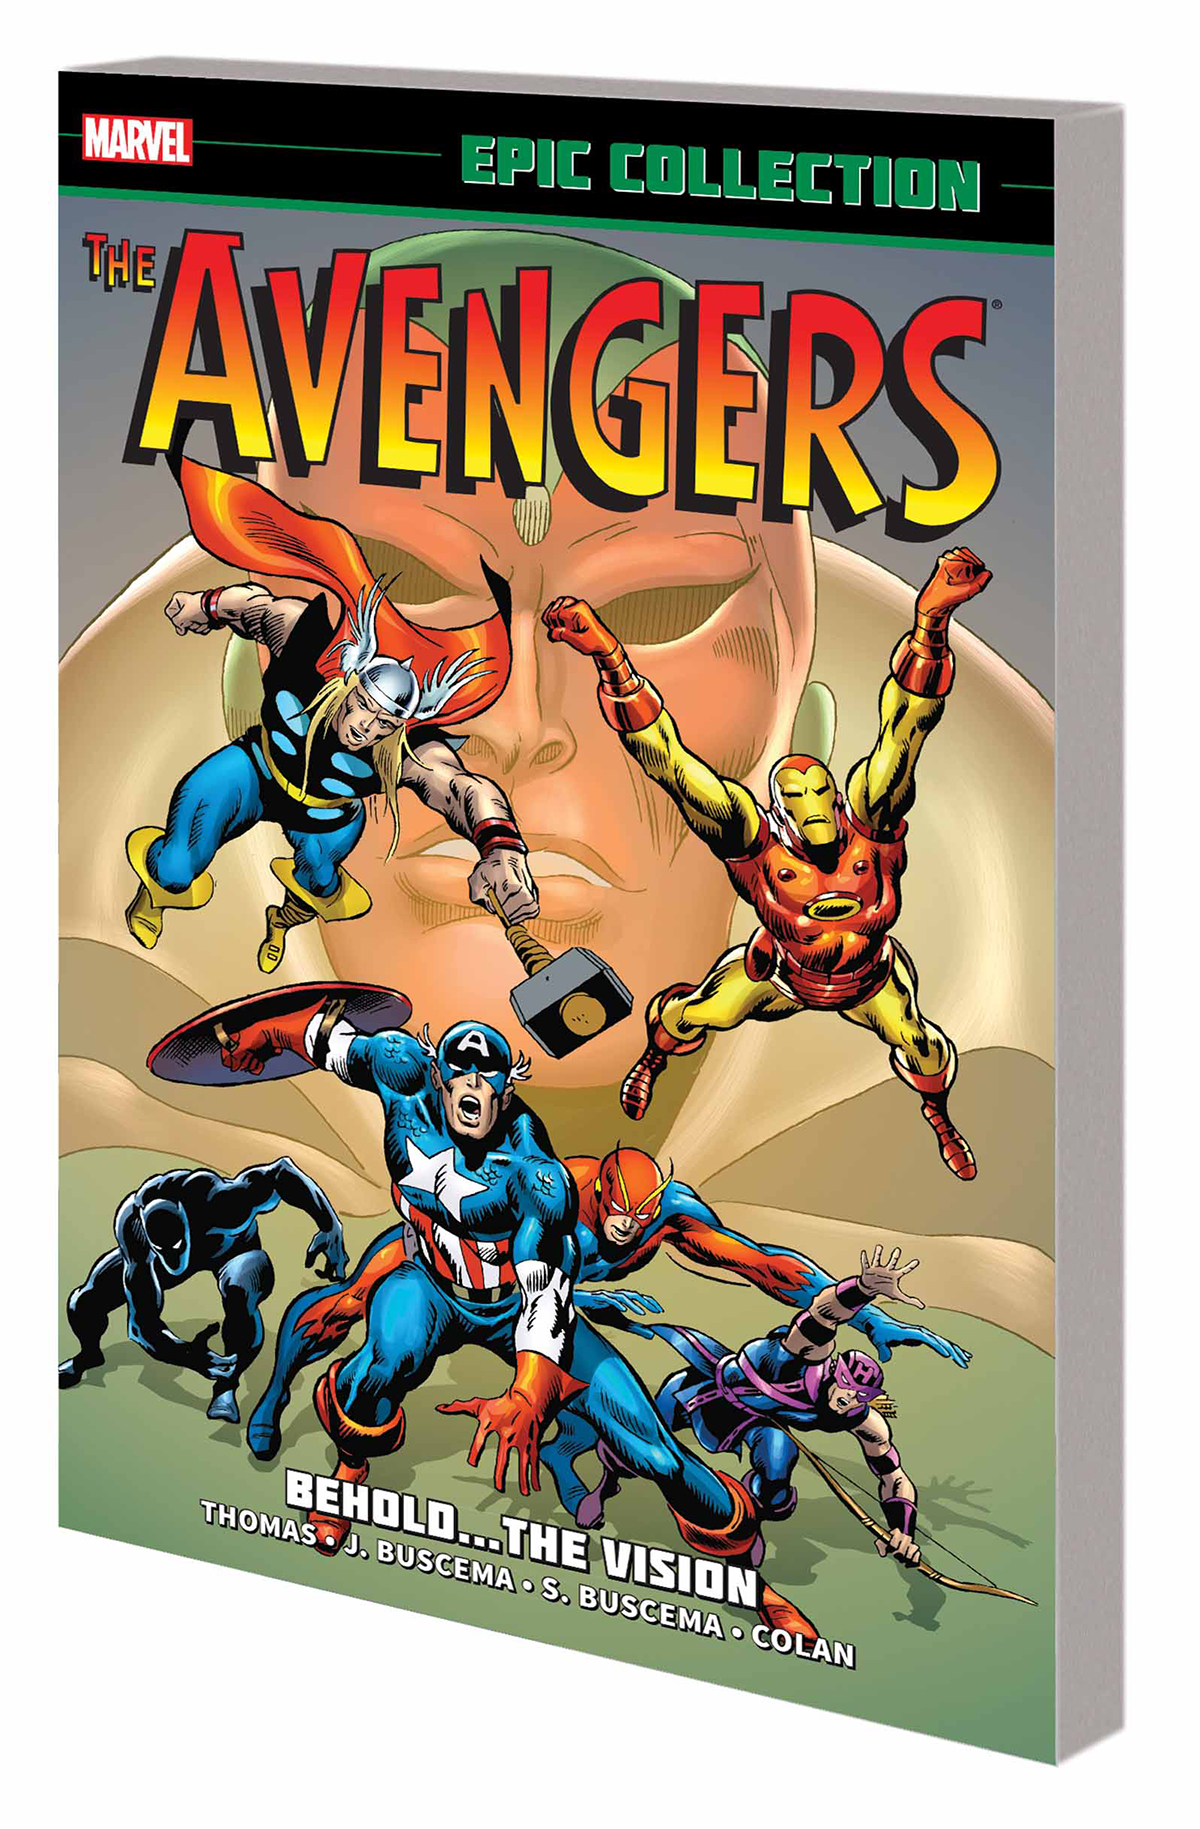 AVENGERS EPIC COLLECTION TP BEHOLD VISION